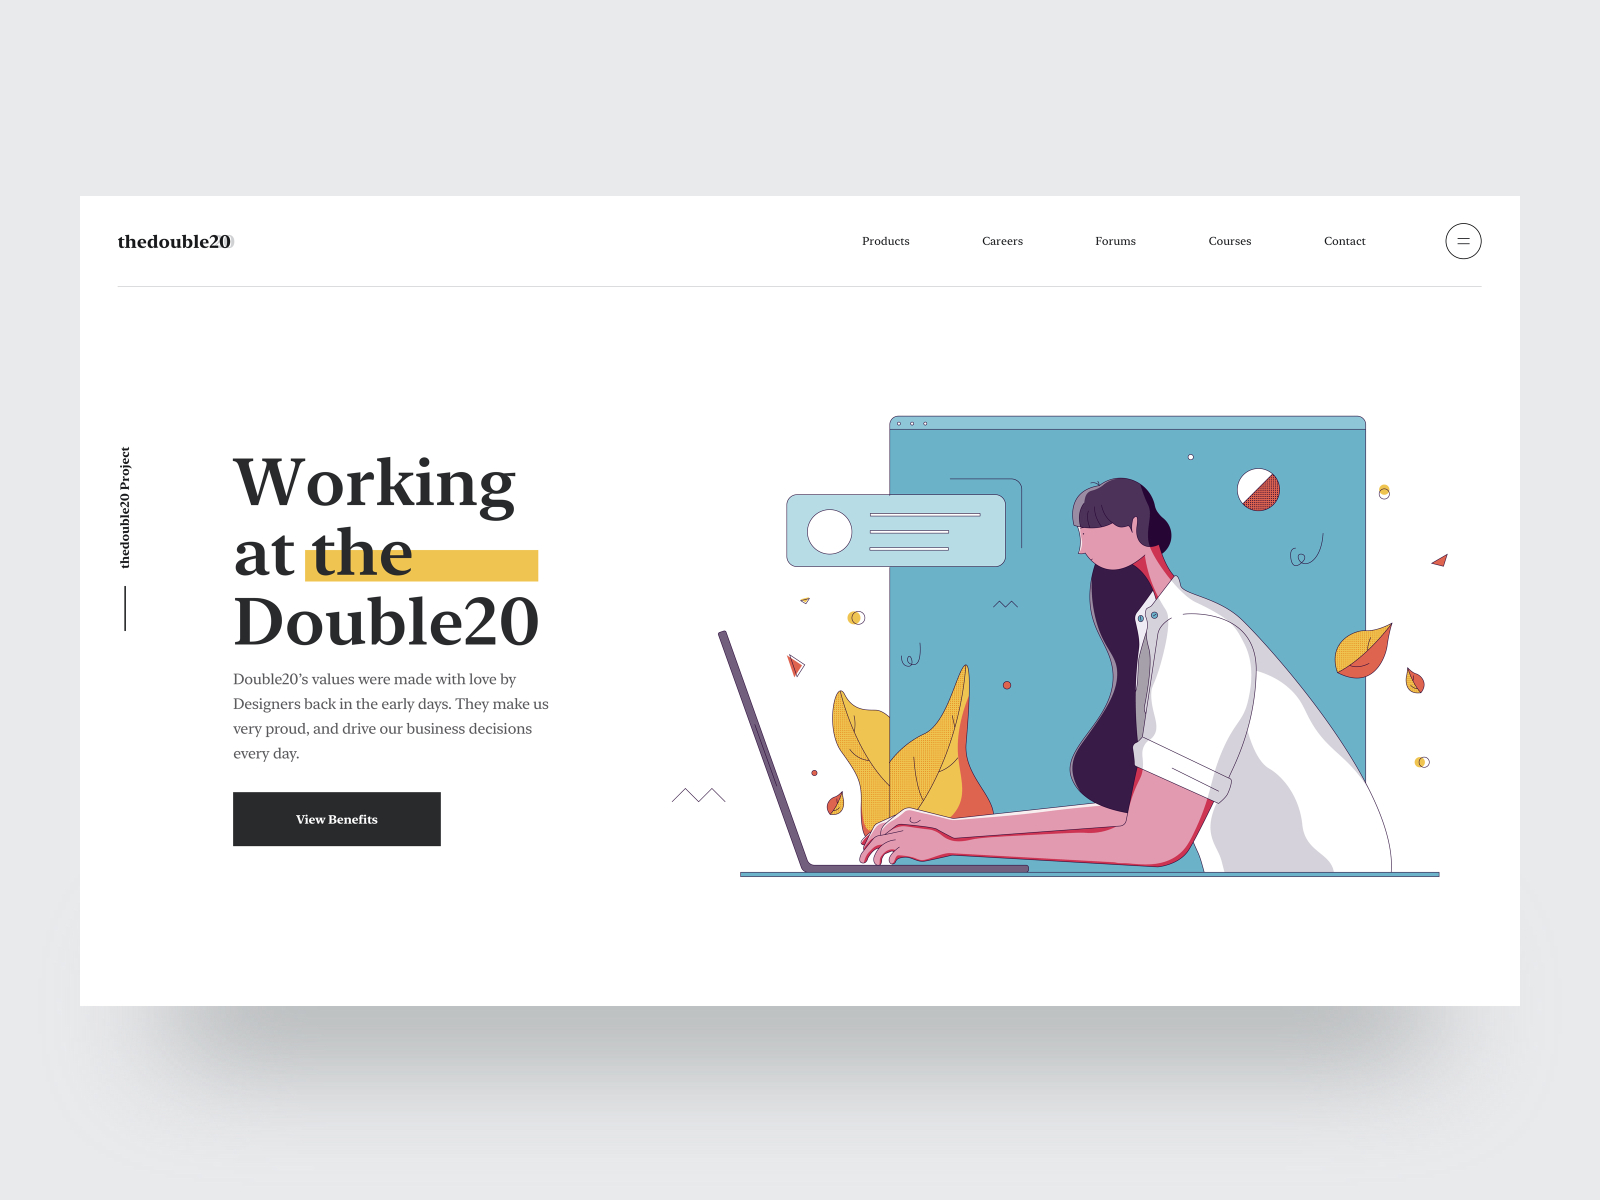 Careers Website Banner Illustration Concept By Tran Mau Tri Tam On Dribbble